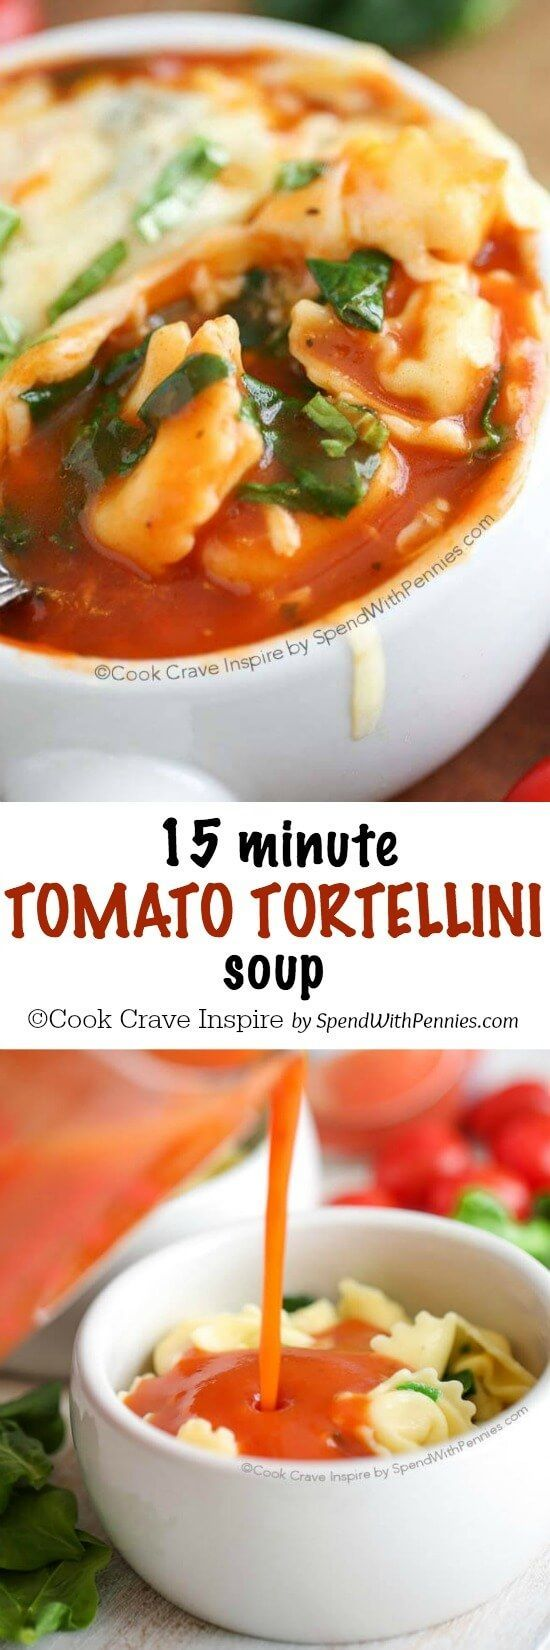 This Tomato Tortellini Soup takes just 15 minutes making it the ...